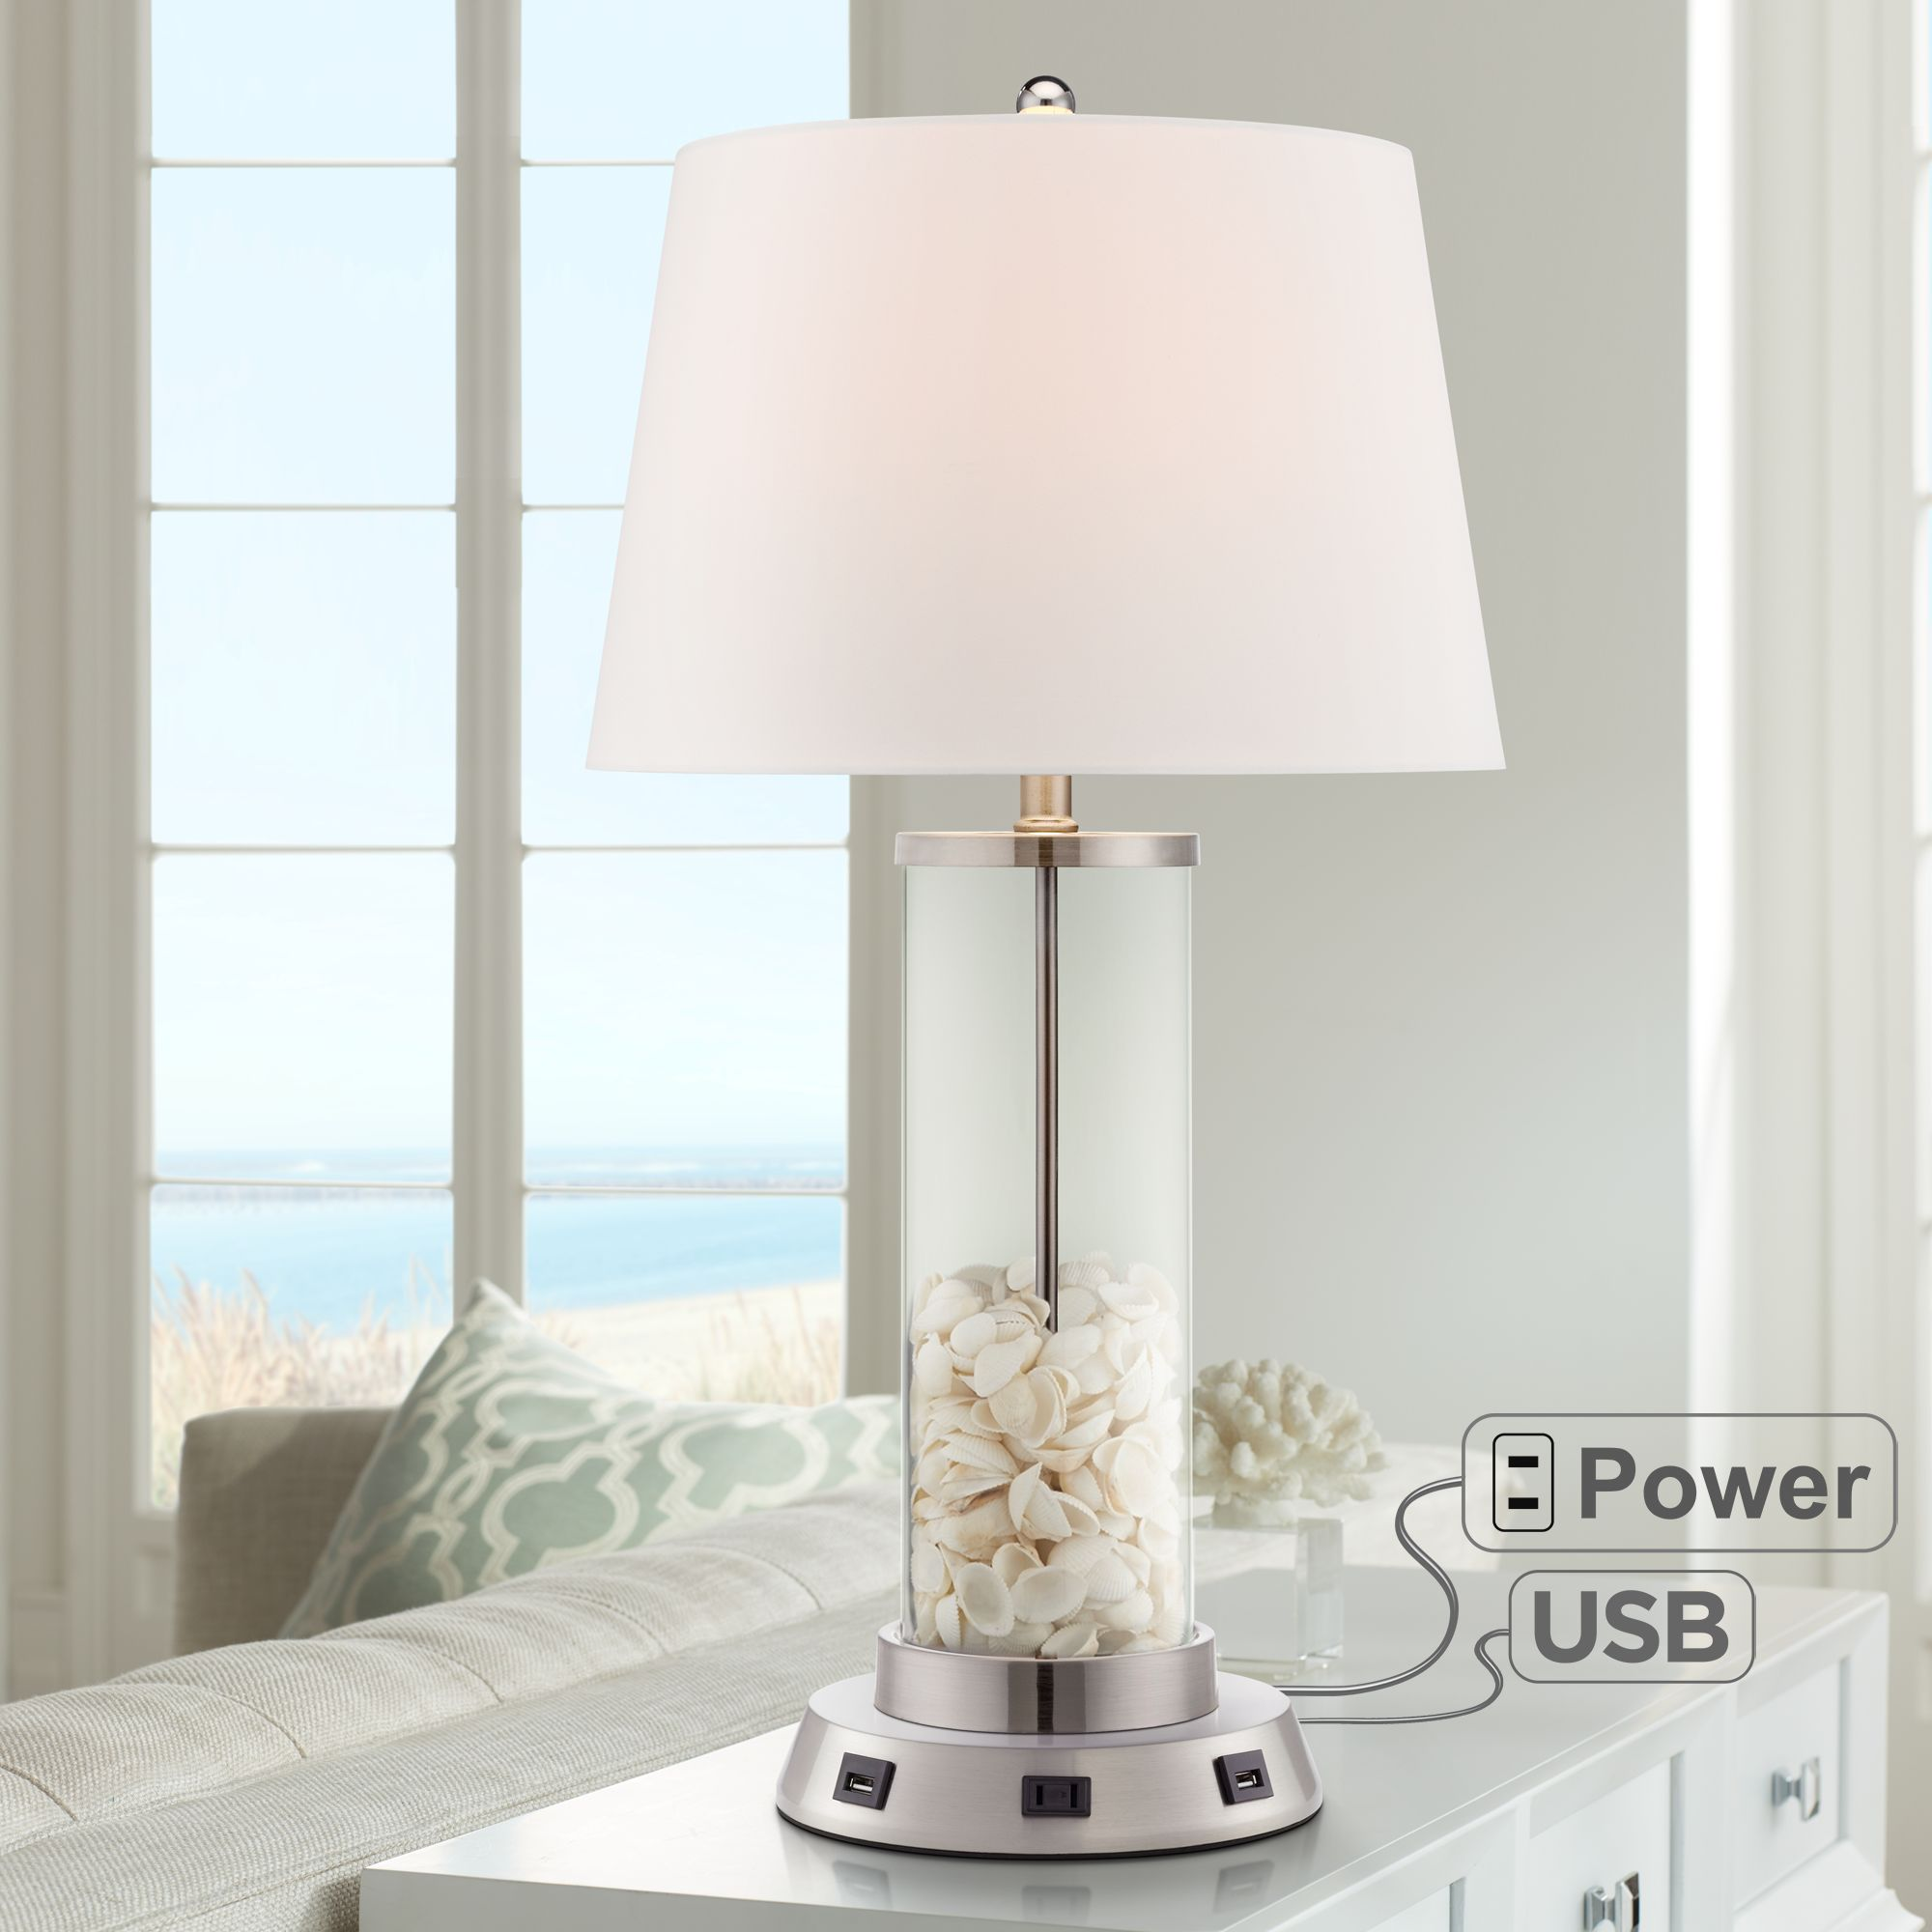 360 Lighting Modern Table Lamp With Usb And Ac Power Outlet Workstation Charging Base Fillable Clear Glass Drum Shade Living Room Walmart Com Walmart Com